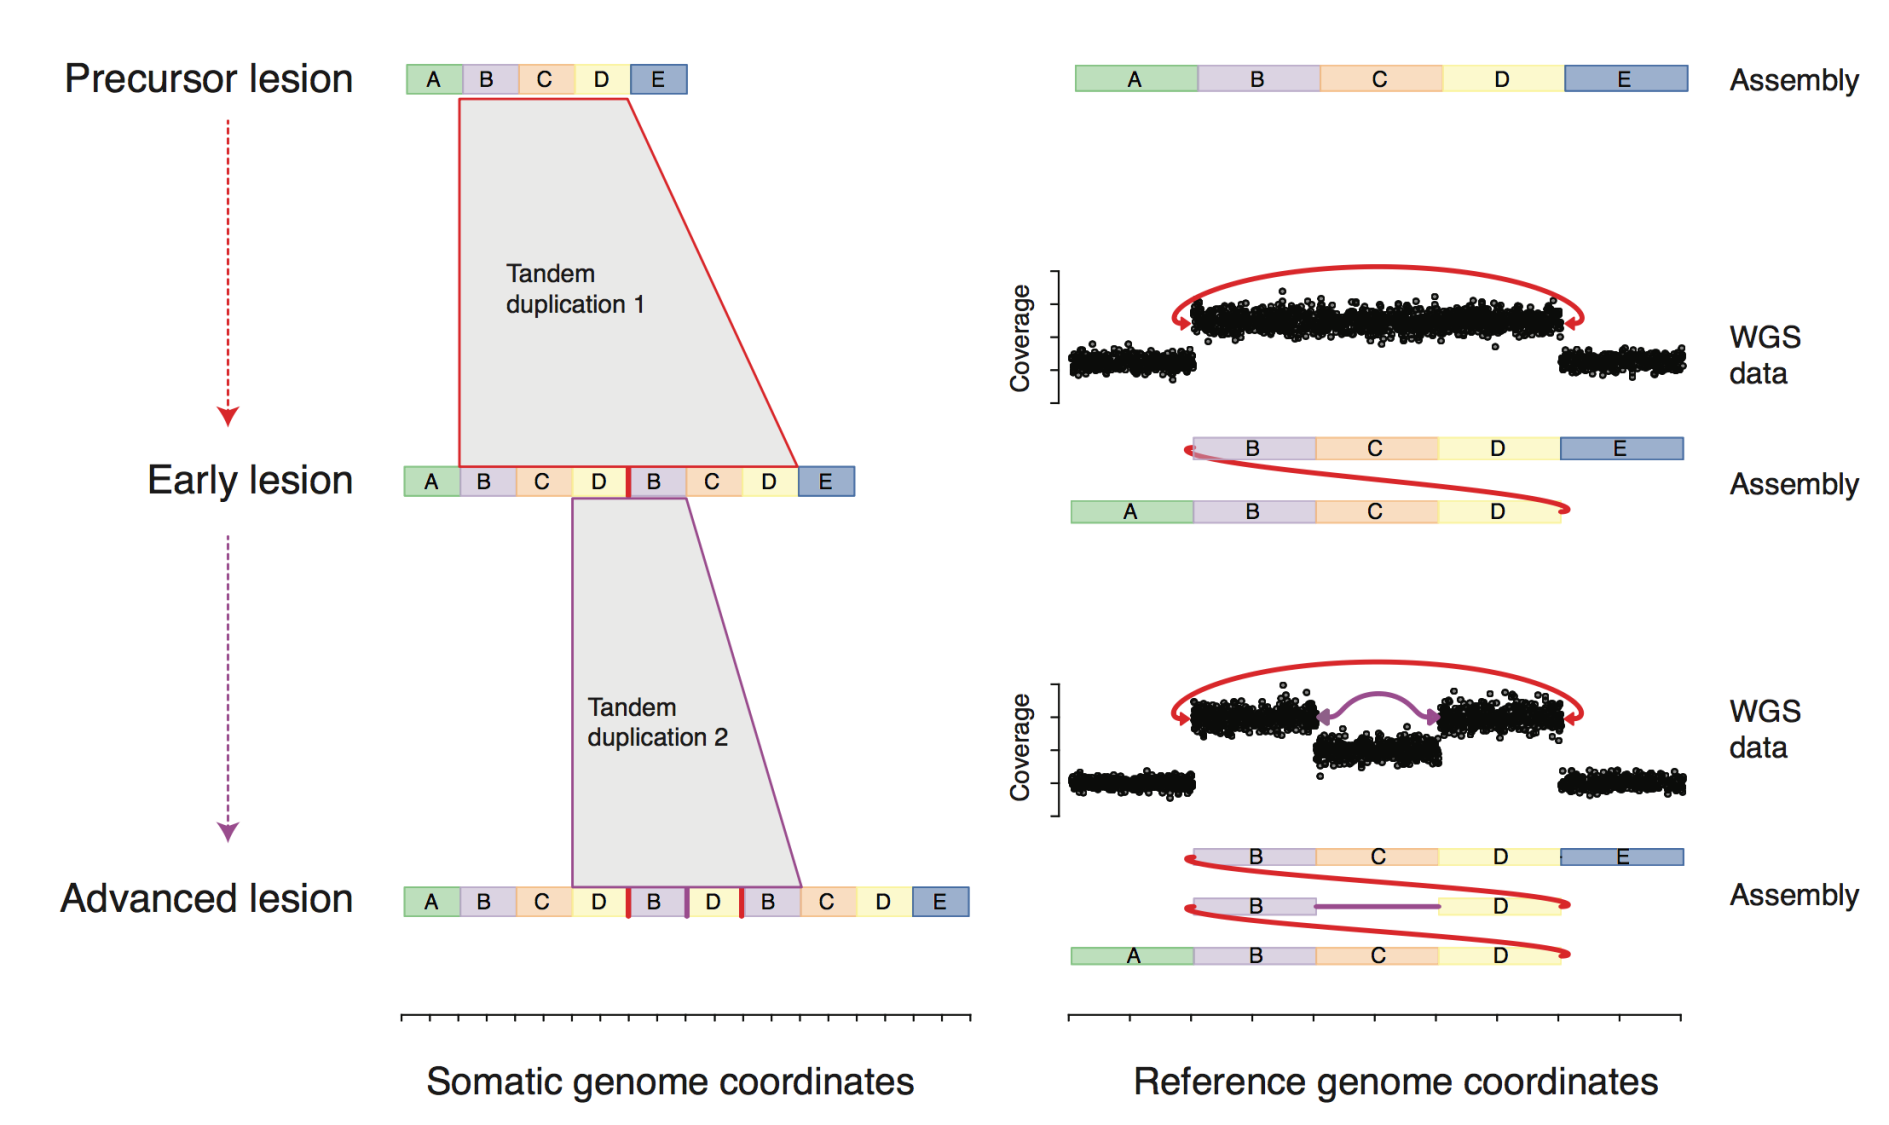 evolution of complex DNA rearrangements in cancer